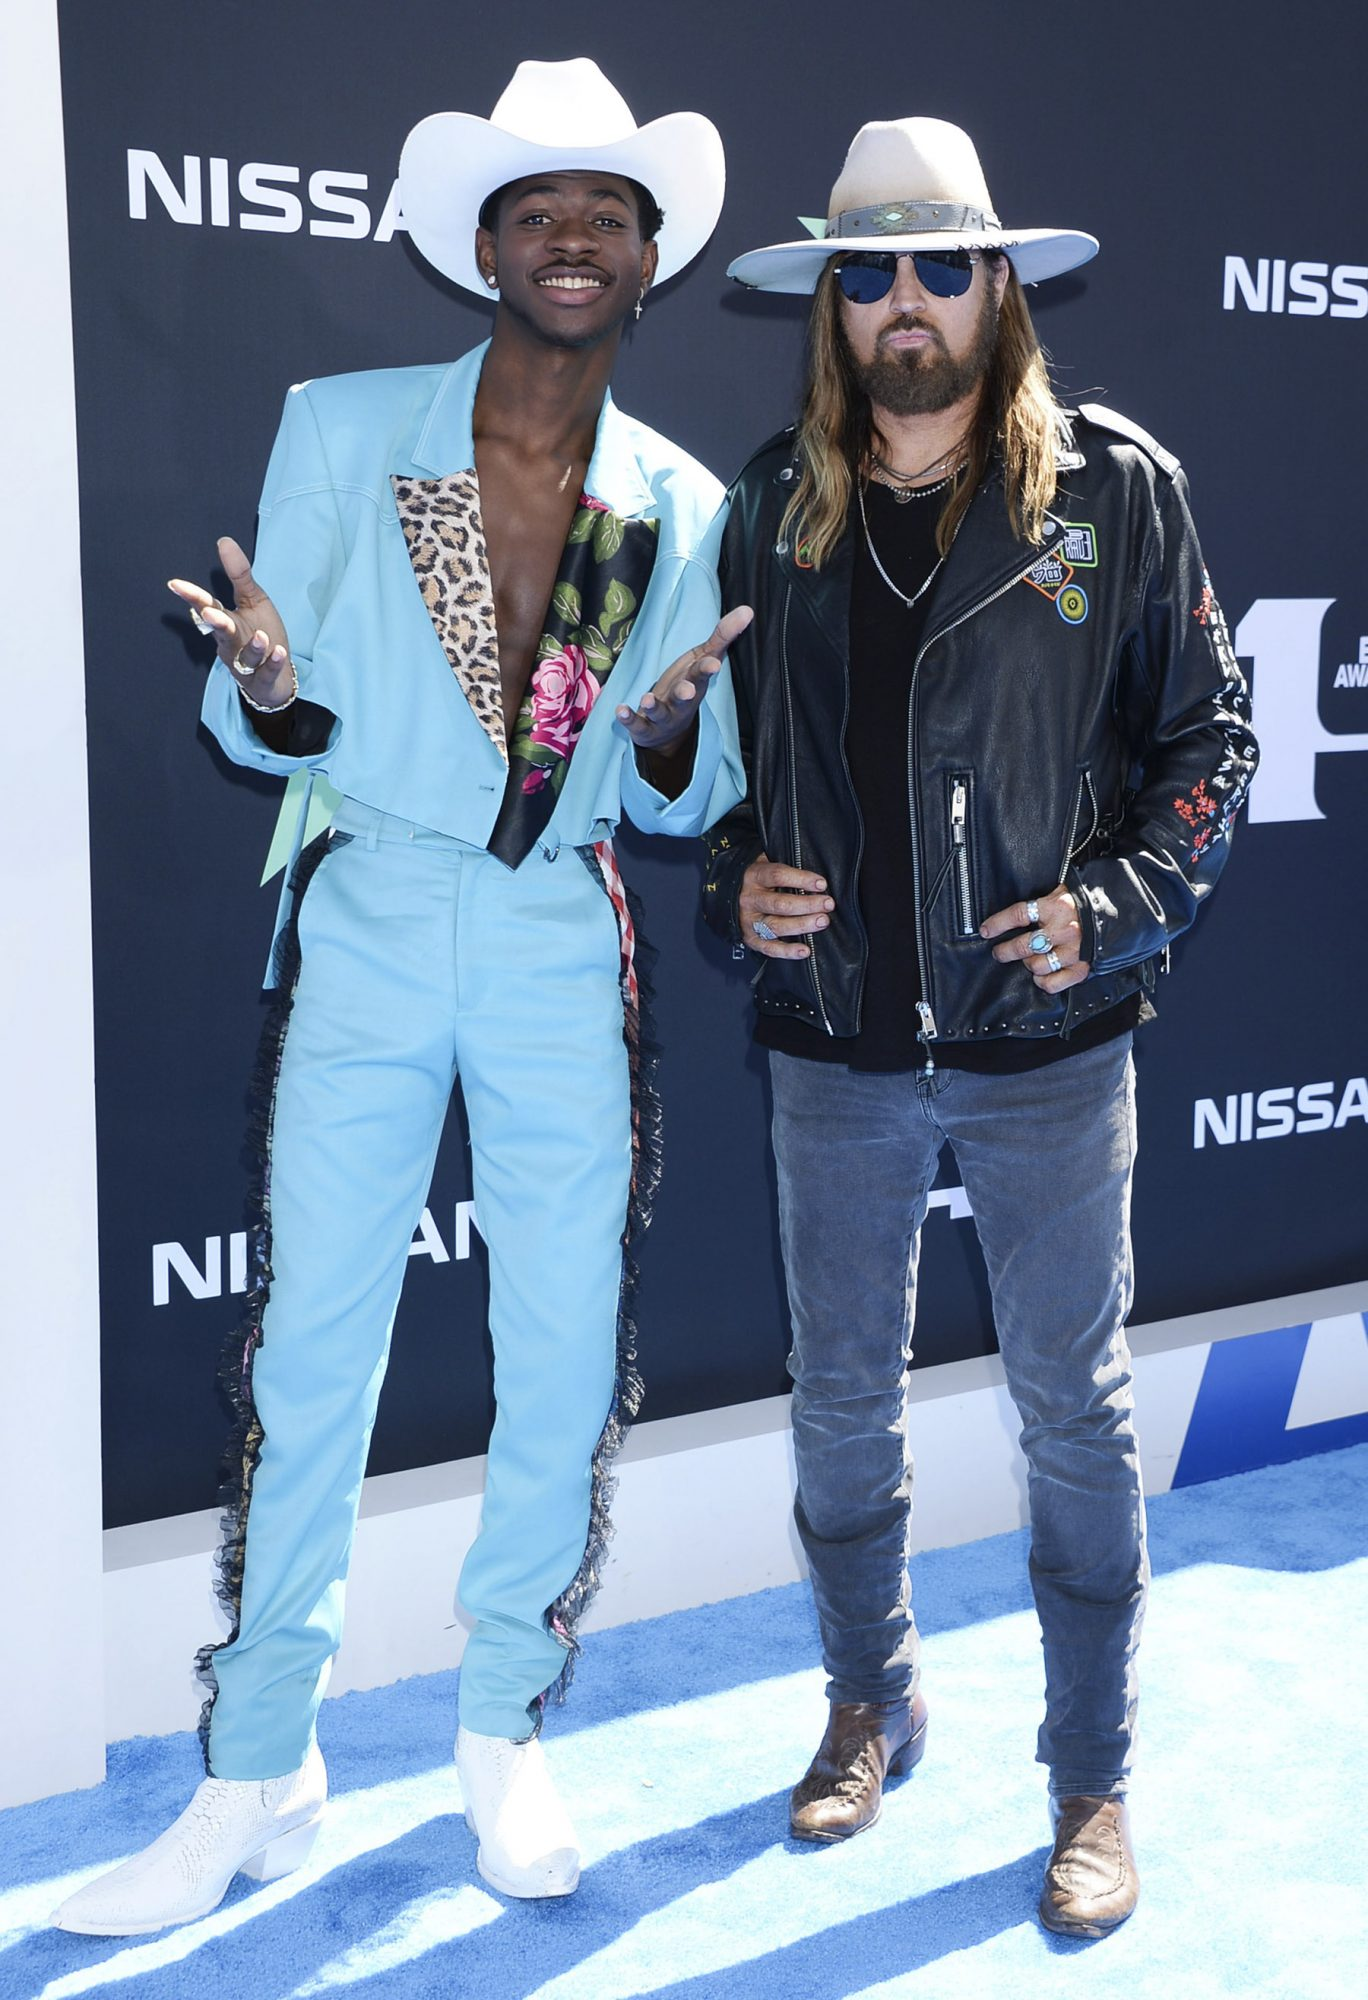 Mandatory Credit: Photo by Broadimage/Shutterstock (10319976cd) Lil Nas X and Billy Ray Cyrus BET Awards, Arrivals, Microsoft Theater, Los Angeles, USA - 23 Jun 2019